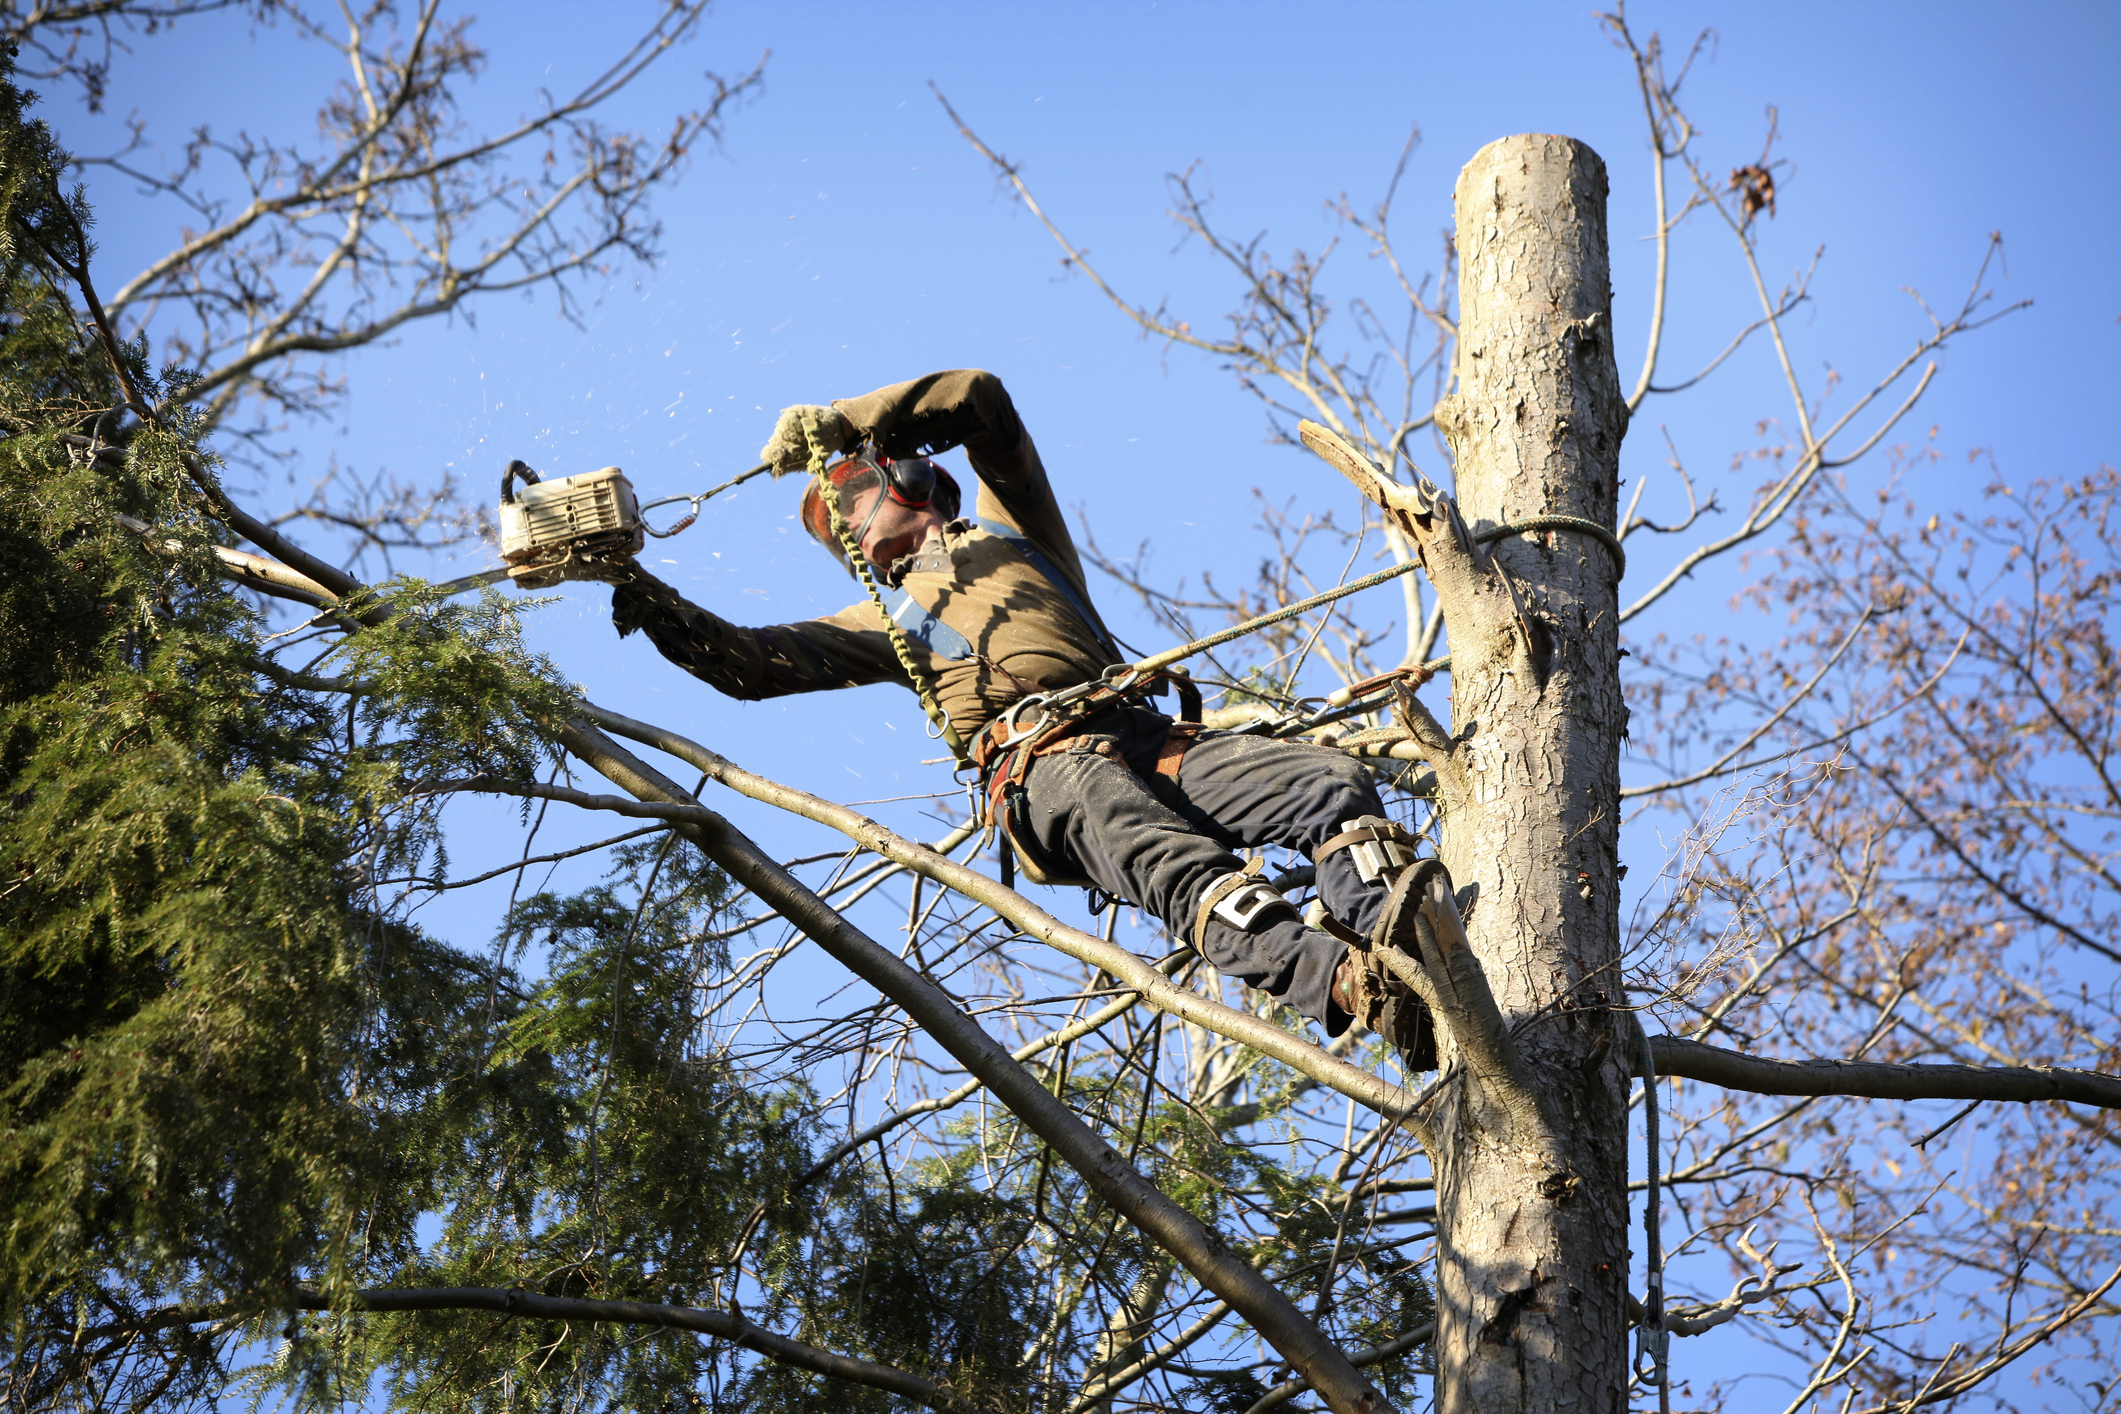 Tree Maintenance & Tree Felling - Crown reductions, crown lifting, dead wooding & site clearances.